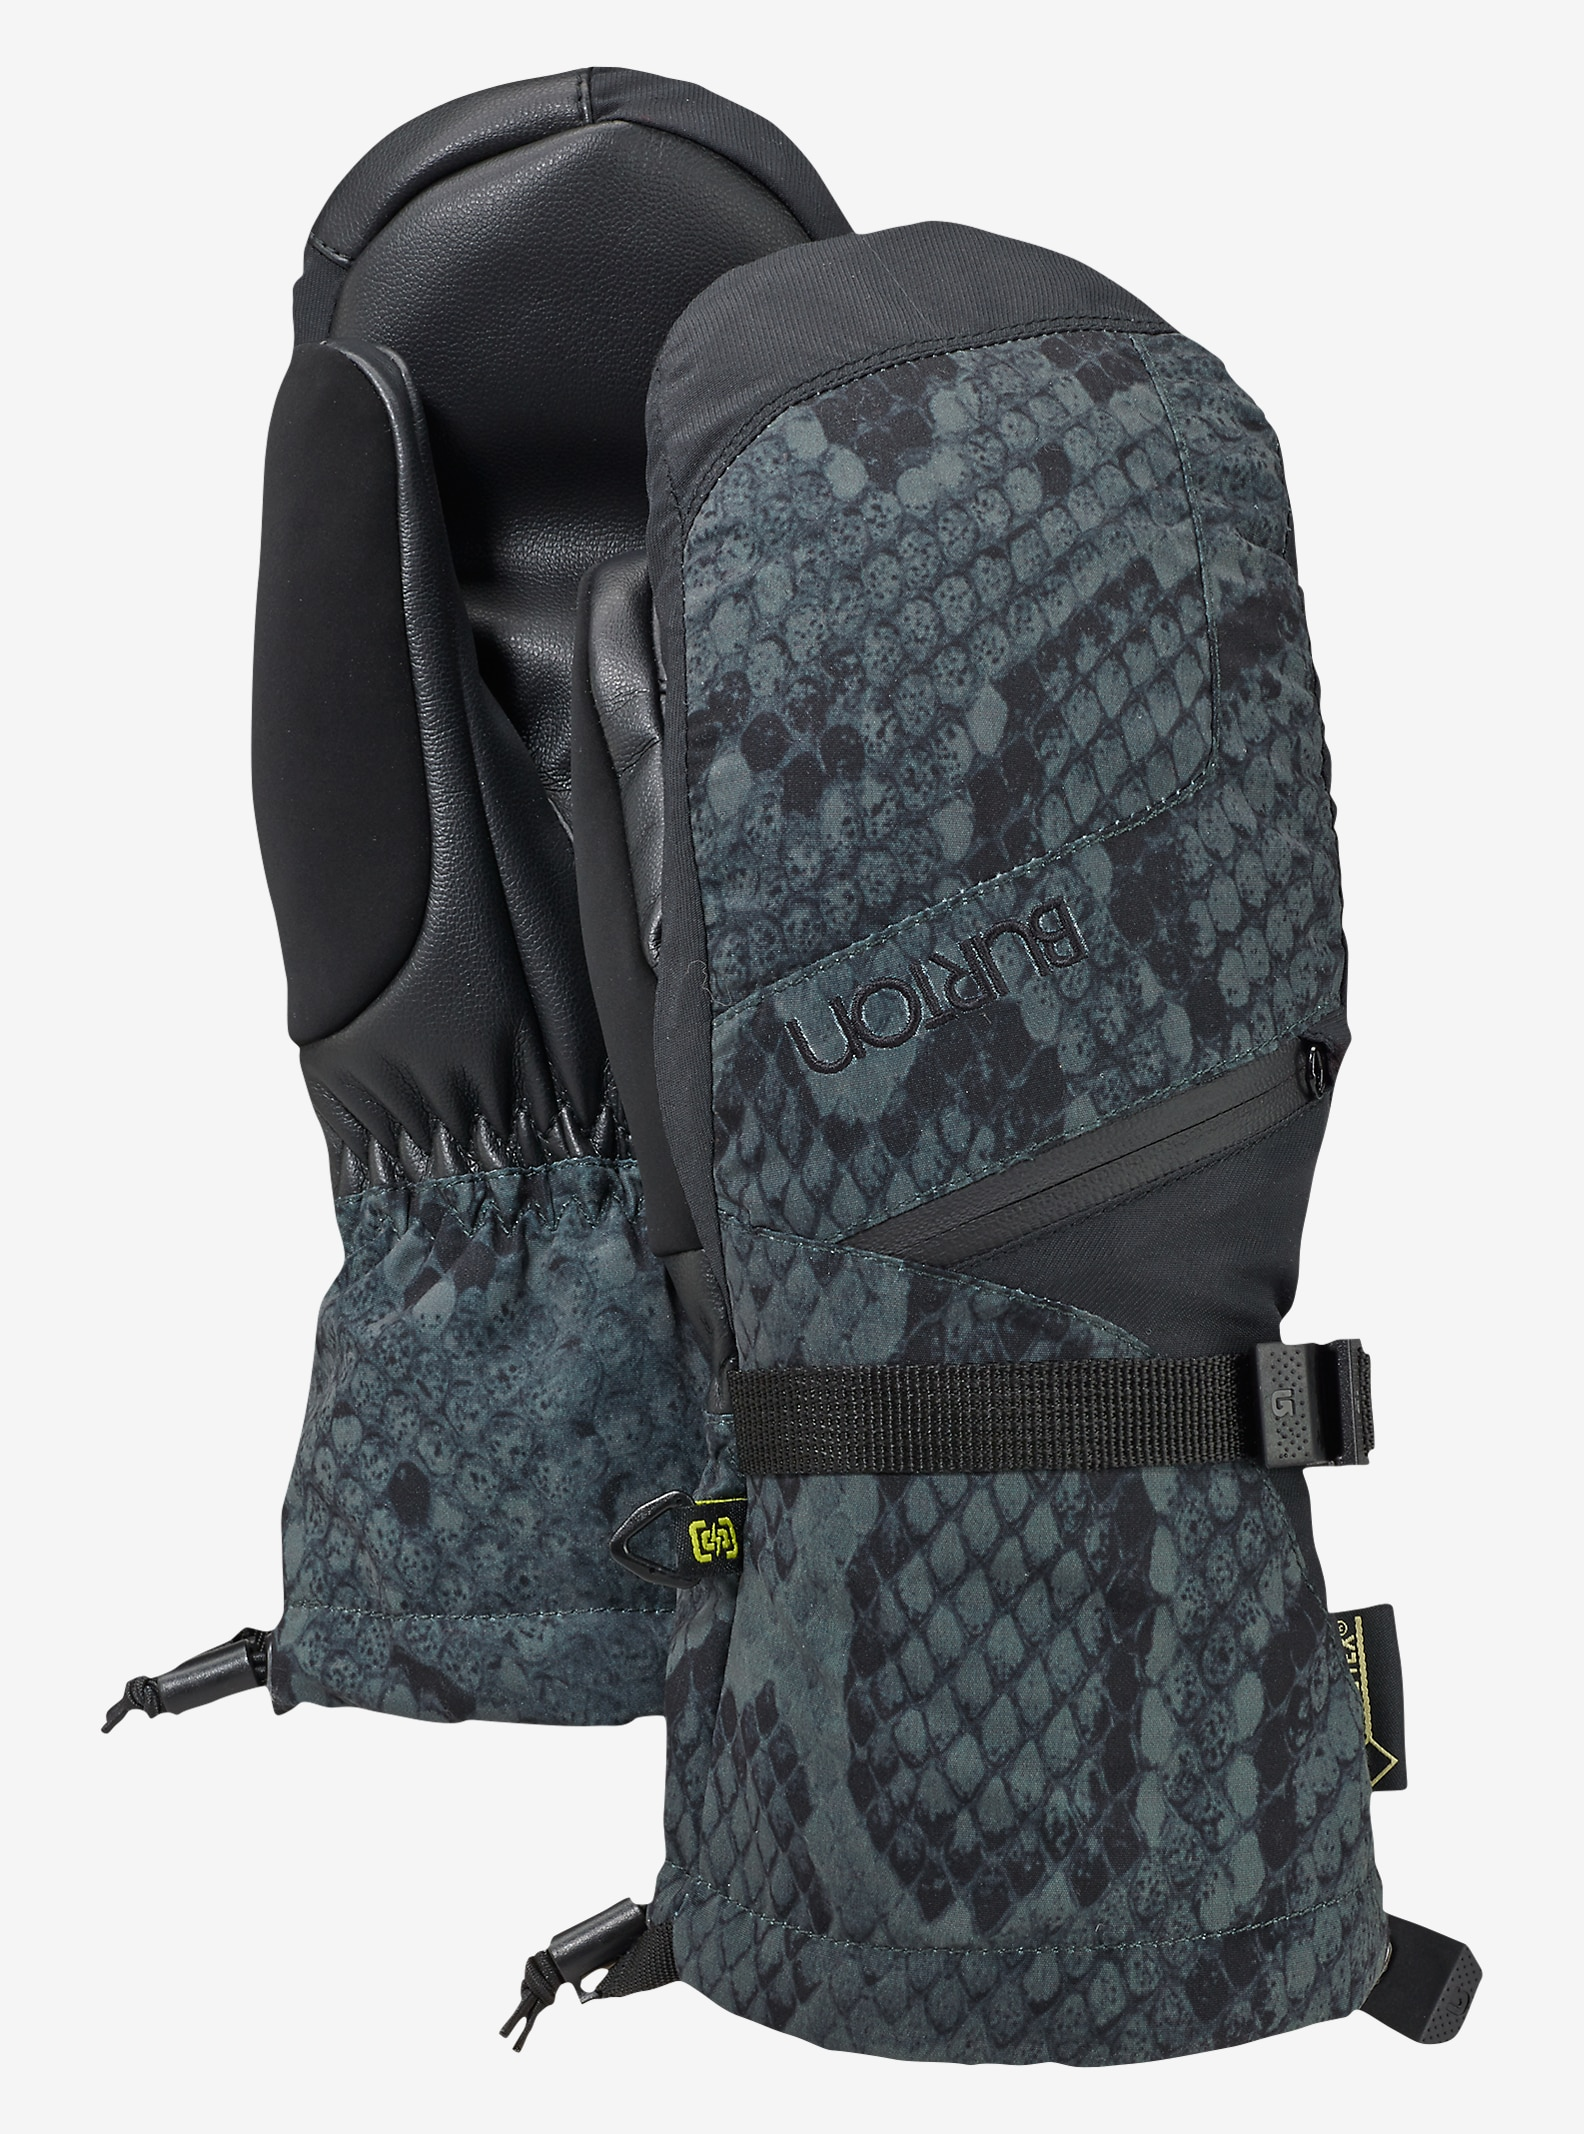 Burton Women's GORE-TEX® Mitt + Gore warm technology shown in Python / True Black